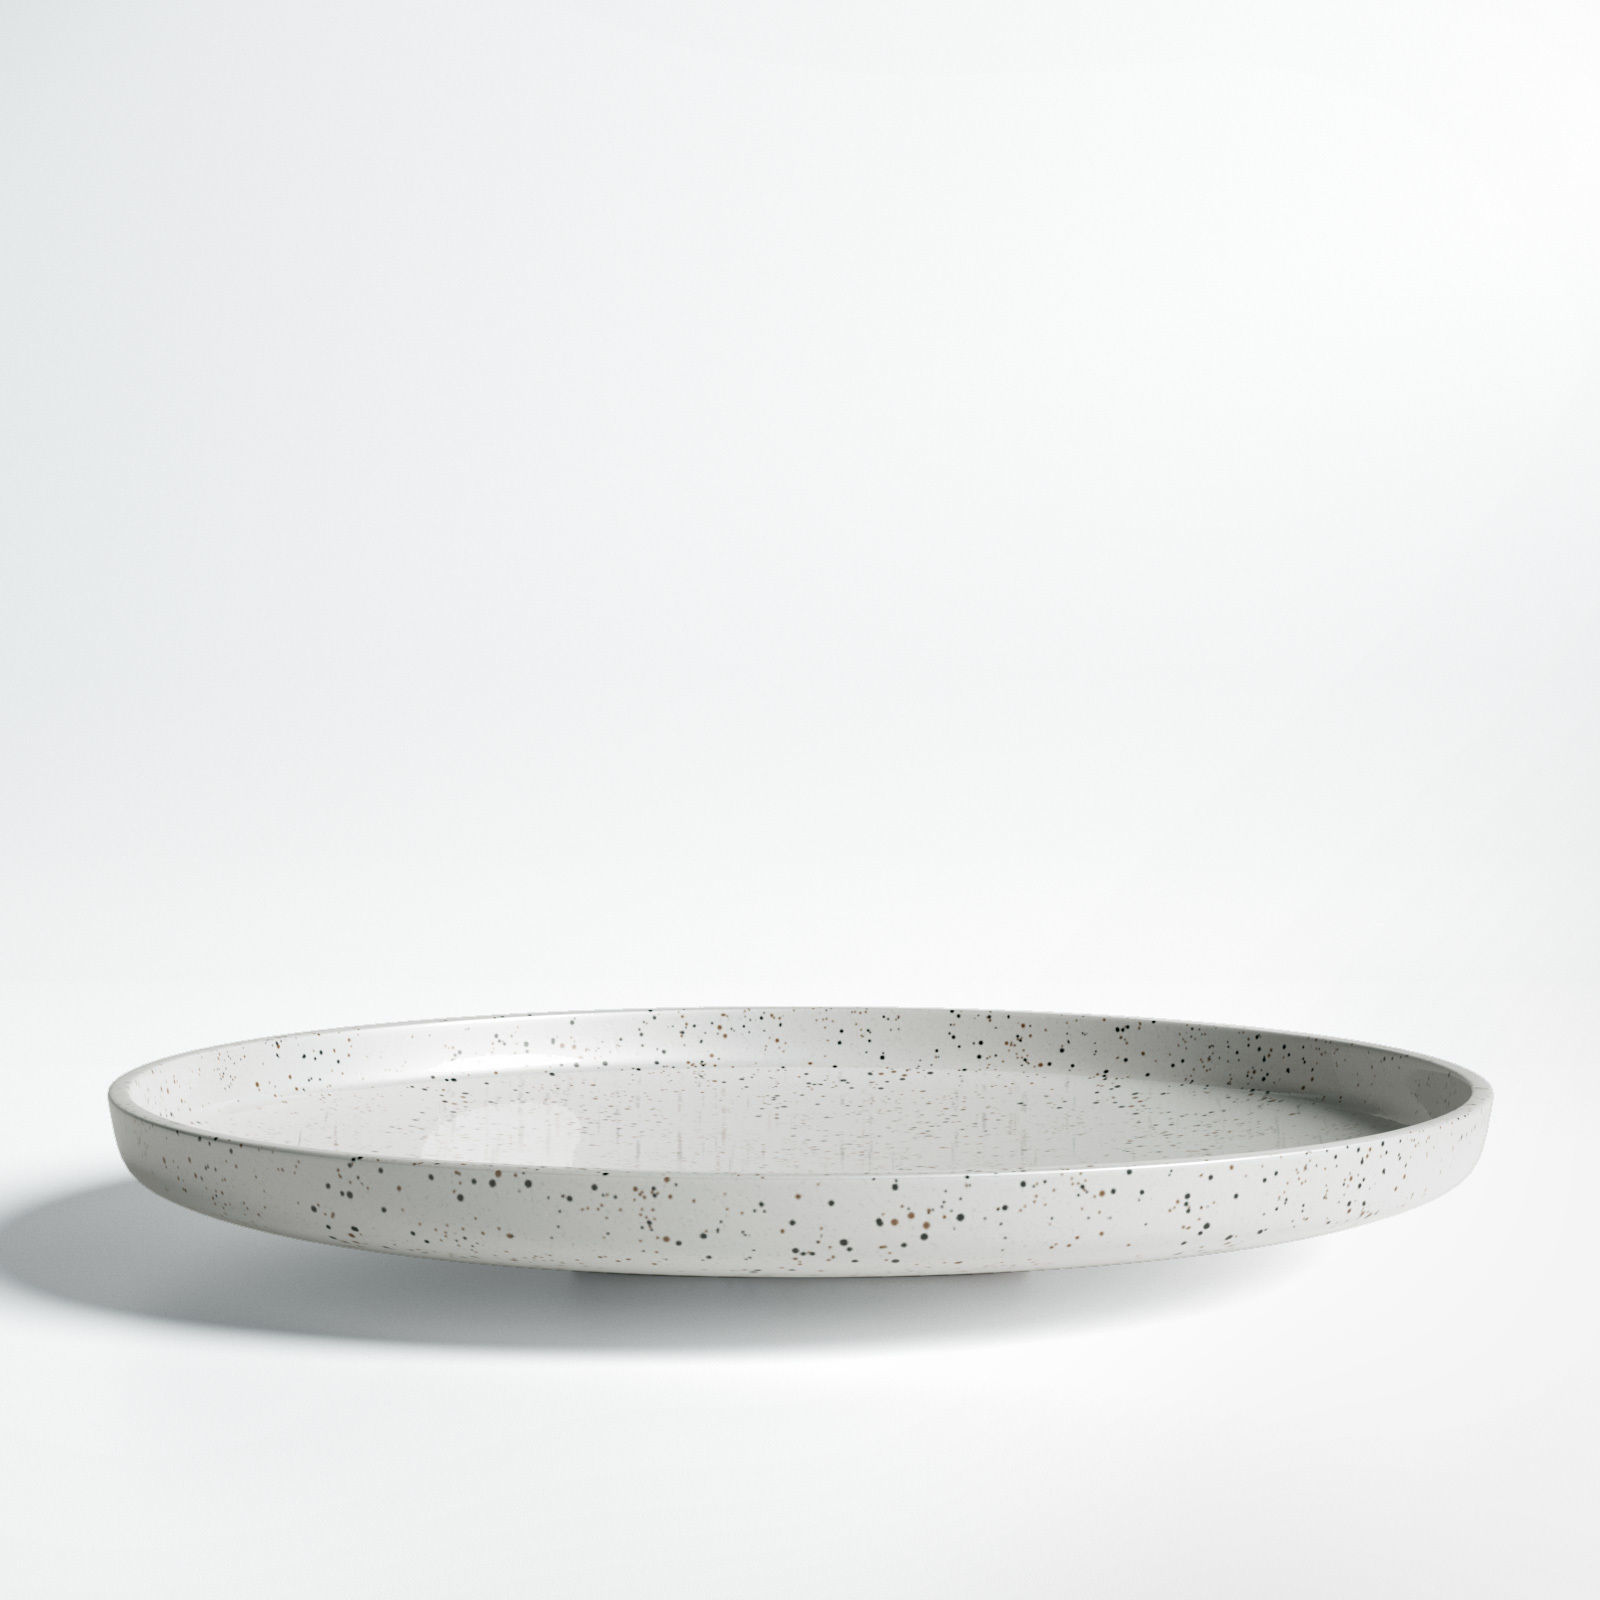 Forma Serving Plate by Bolia